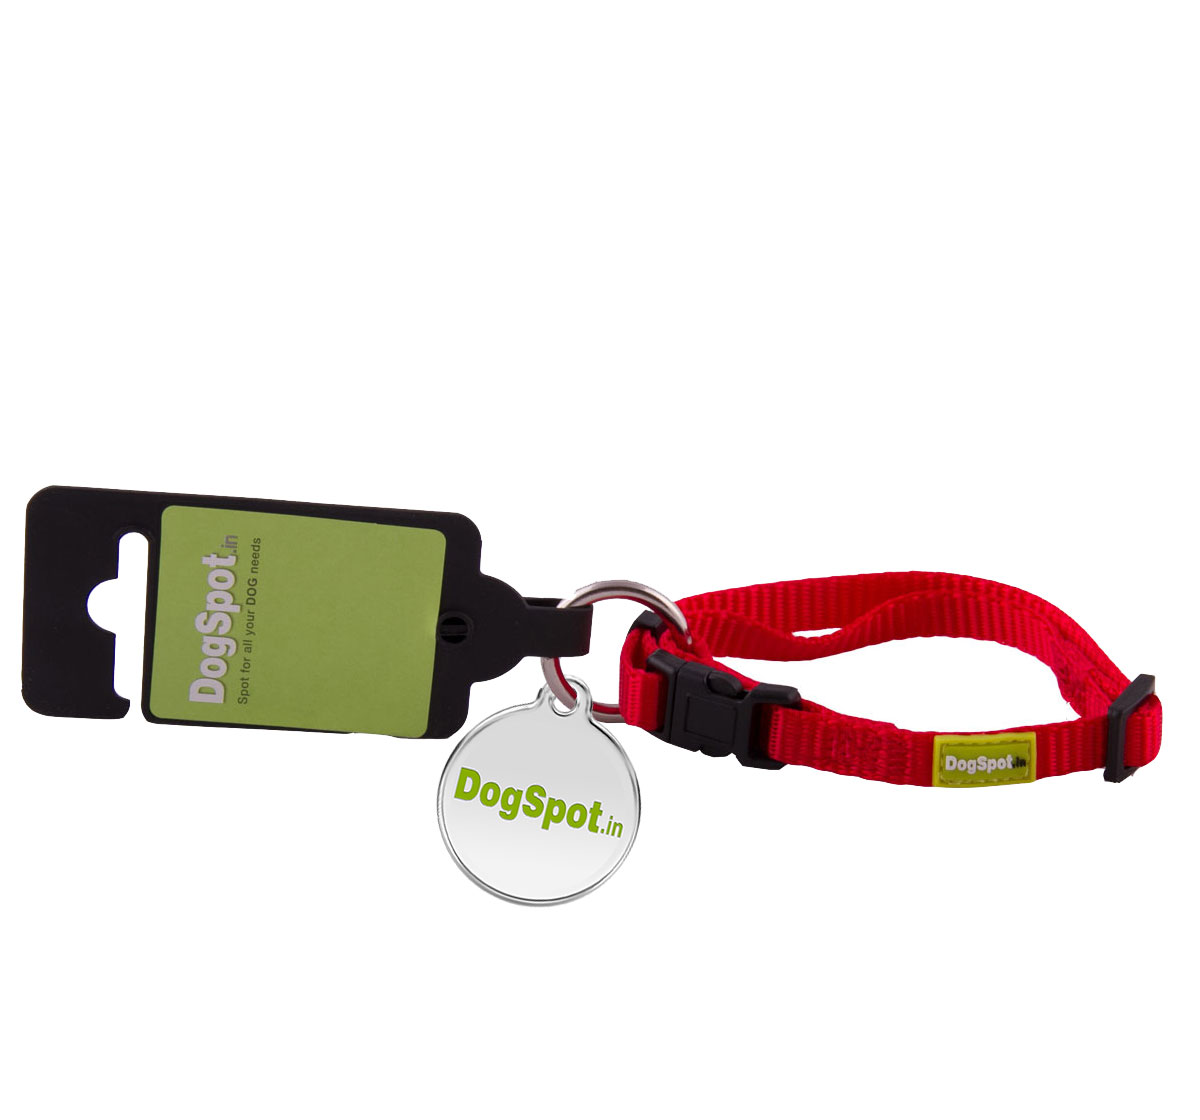 DogSpot Premium Adjustable CollarRed - Medium With Wag Tag